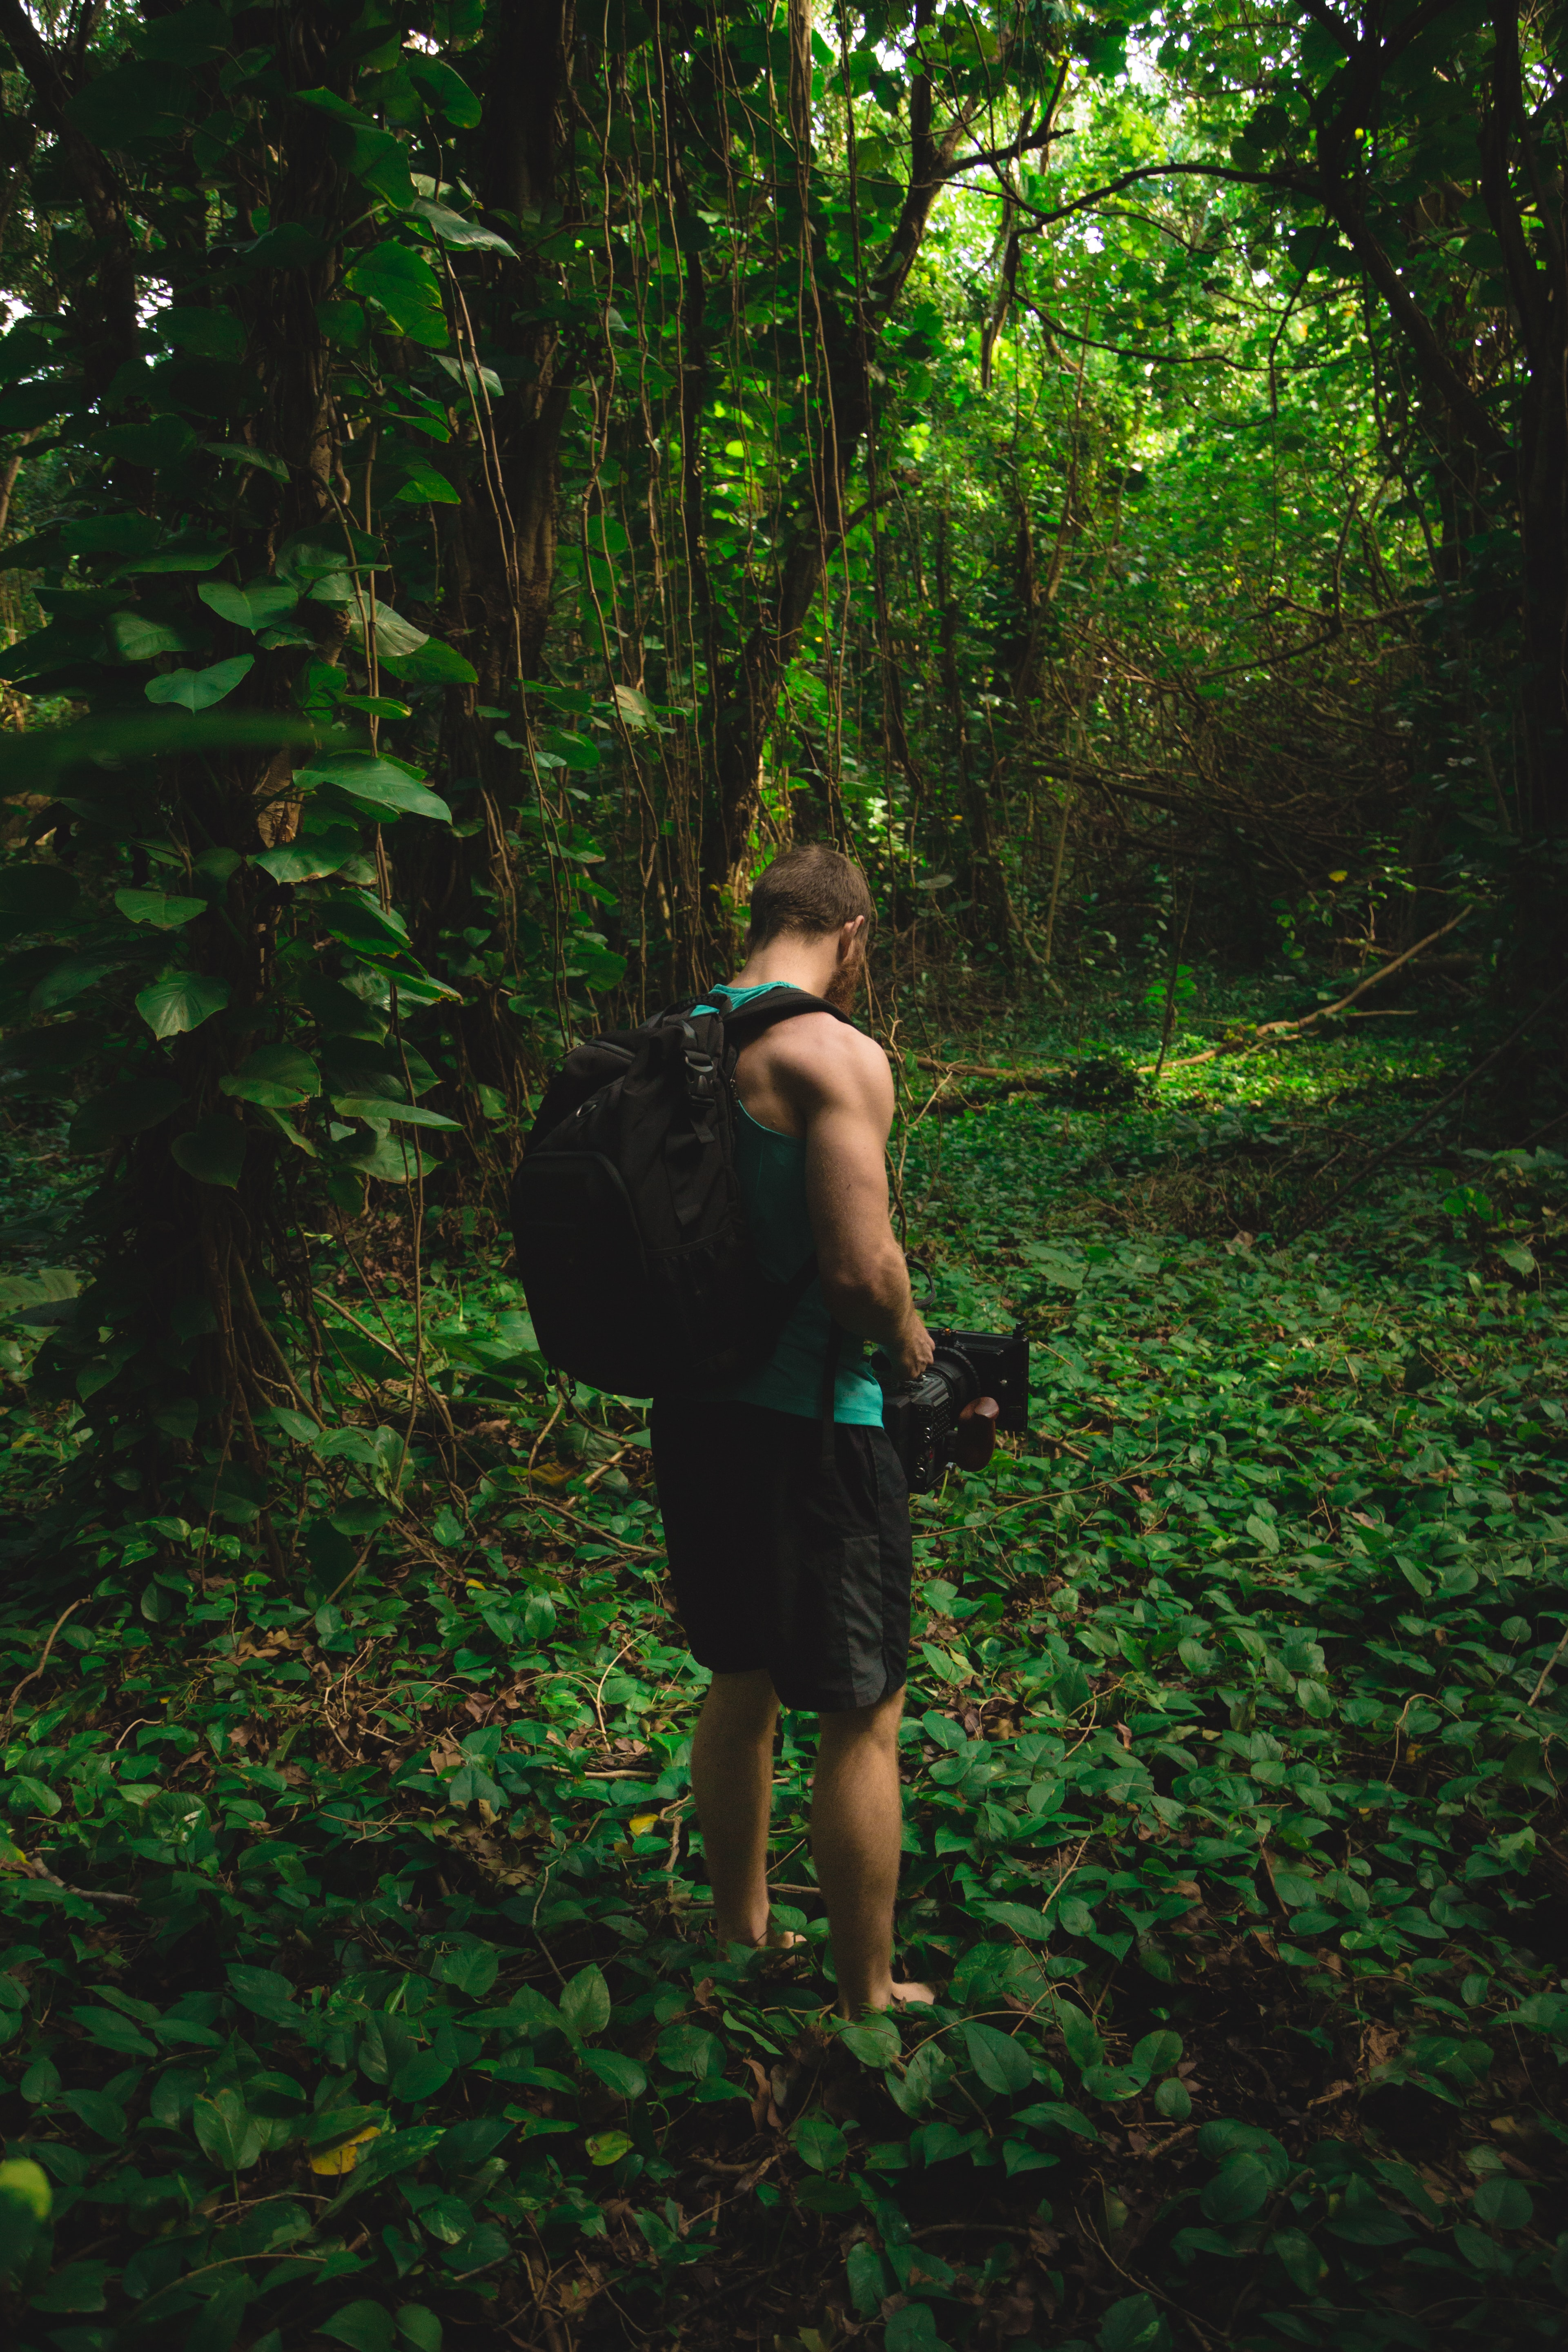 man stands near trees and carries black camera and black backpack during daytime